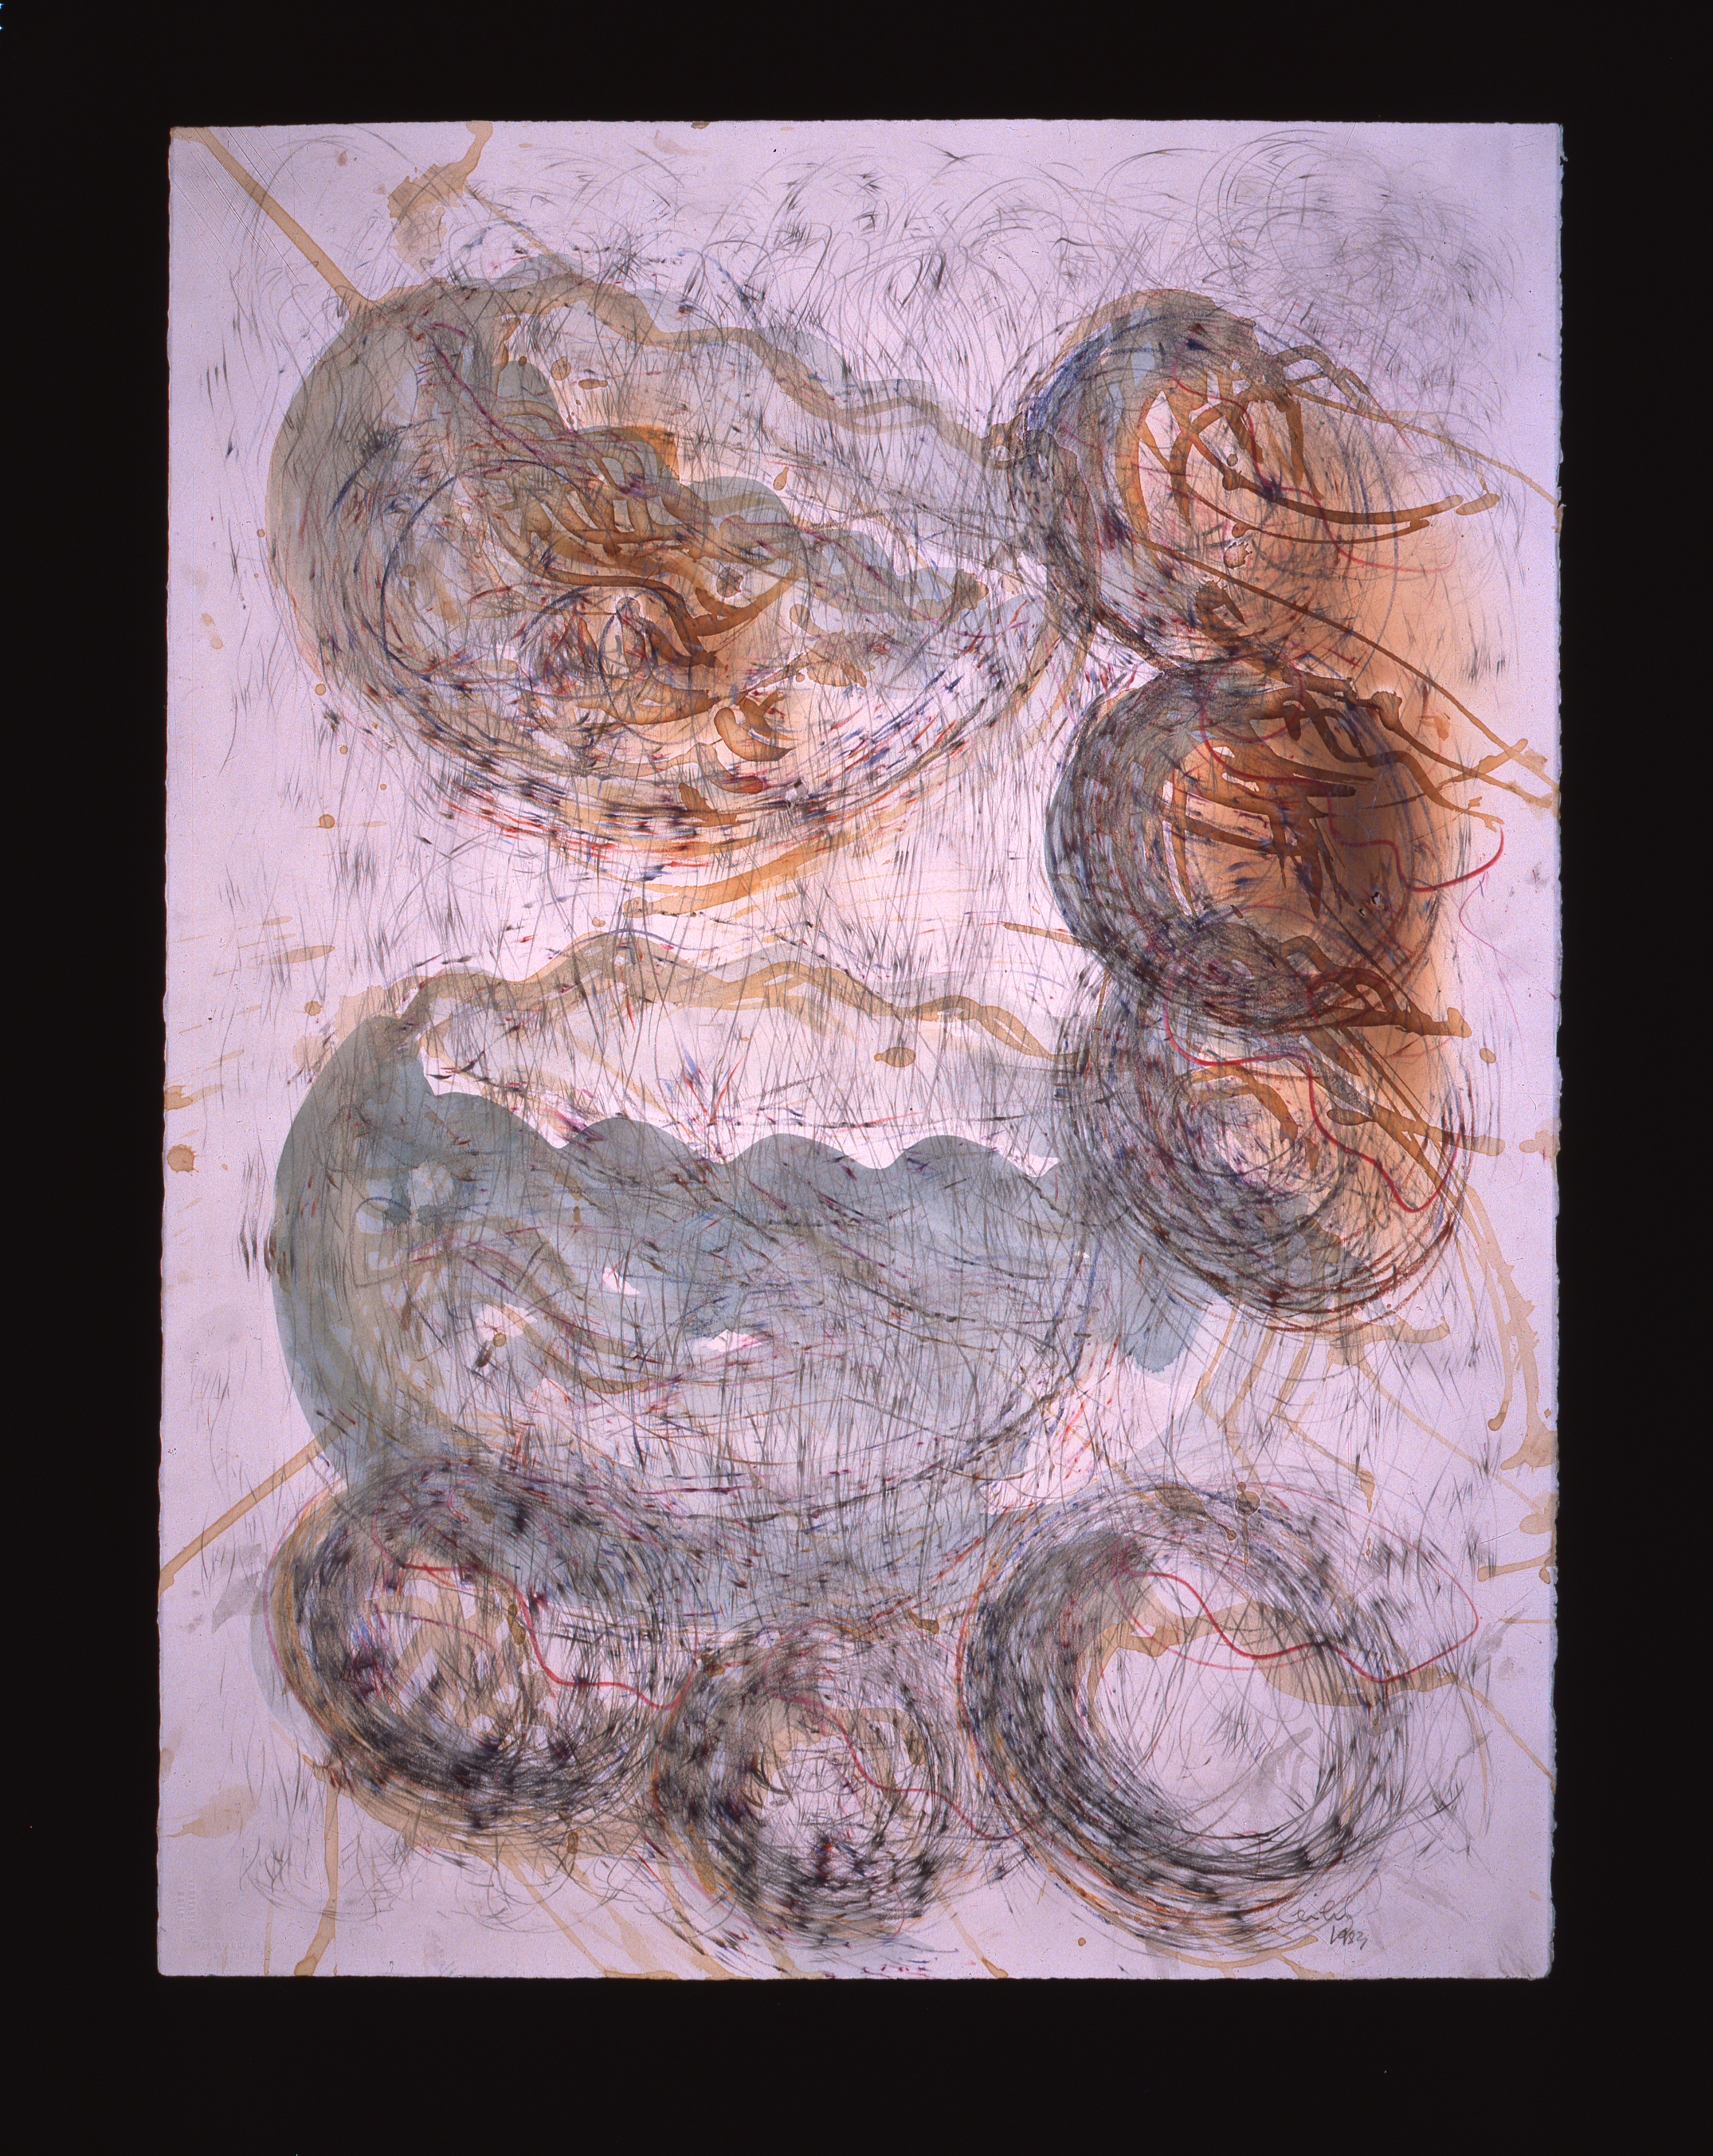 Dale Chihuly, Basket Drawing (1983, watercolor, graphite, ink colored pencil and coffeeon paper, 30 x 22 inches), DC.366